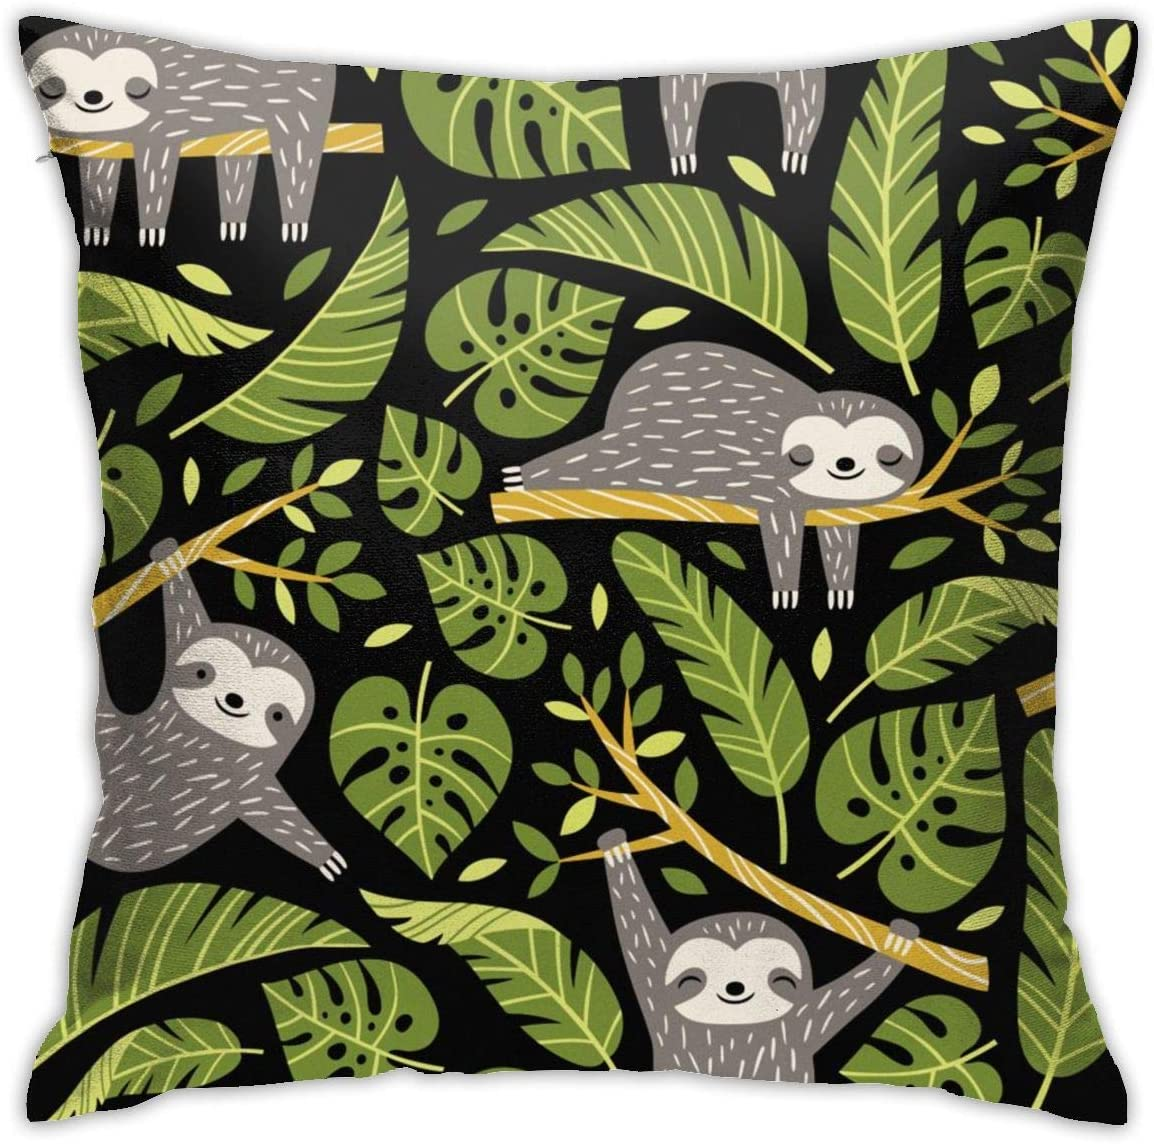 ZJBLHEQ Cute Sloths and Tropical Palm Leaves Throw Pillow Cover Decorative Pillow Cases Square Cushion Case for Sofa Bedroom Car 18 x 18 Inch